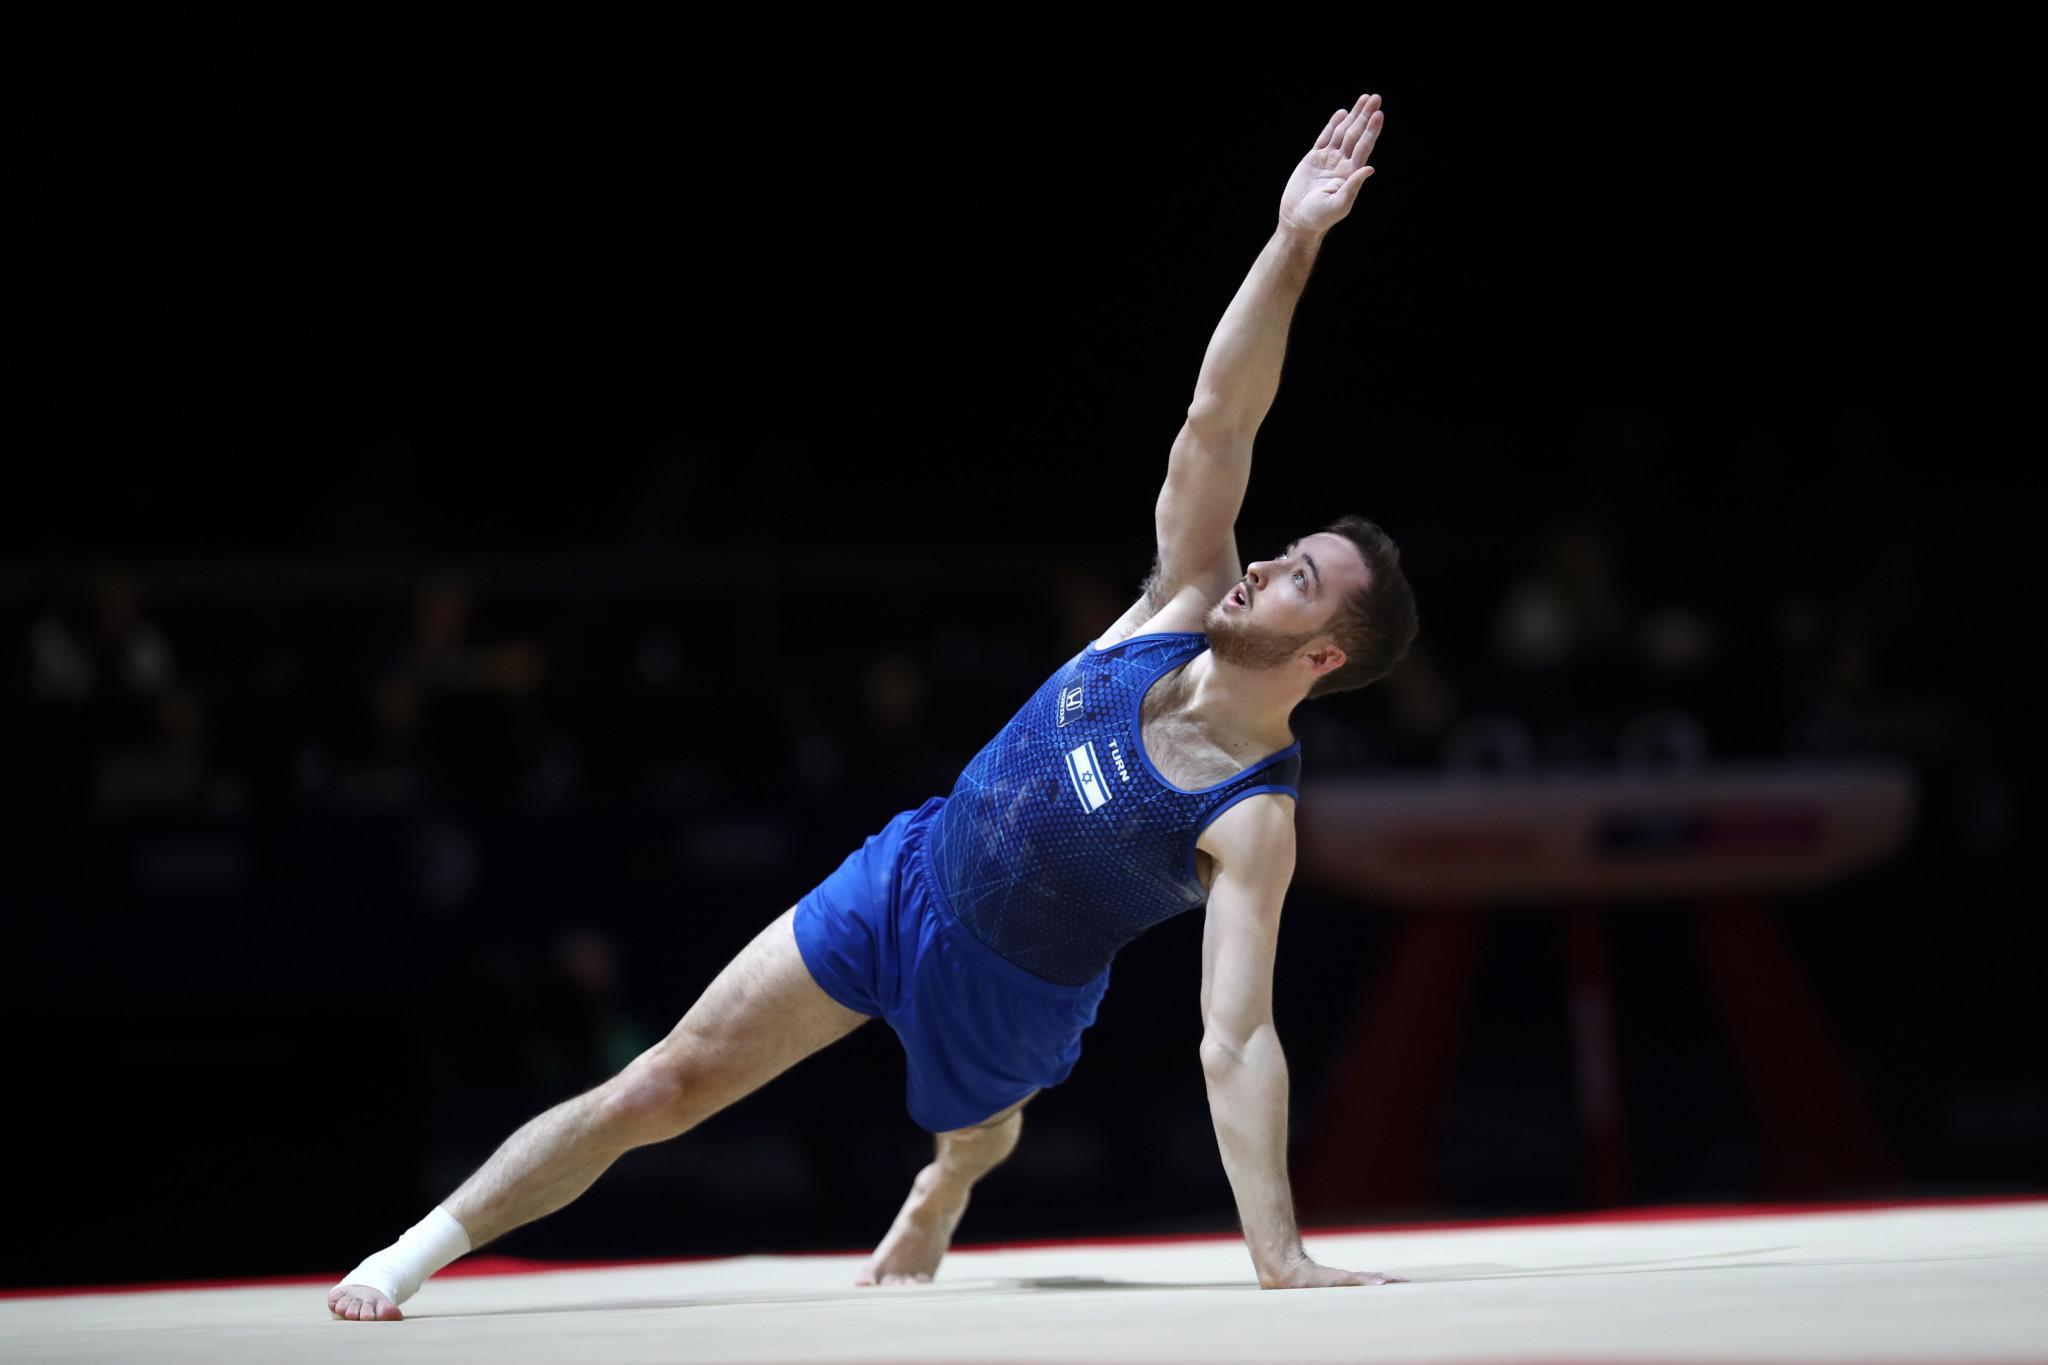 Israel's Artem Dolgopyat topped the men's floor exercise qualification standings as action begun today at the International Gymnastics Federation Individual Apparatus World Cup in Cottbus in Germany ©Getty Images